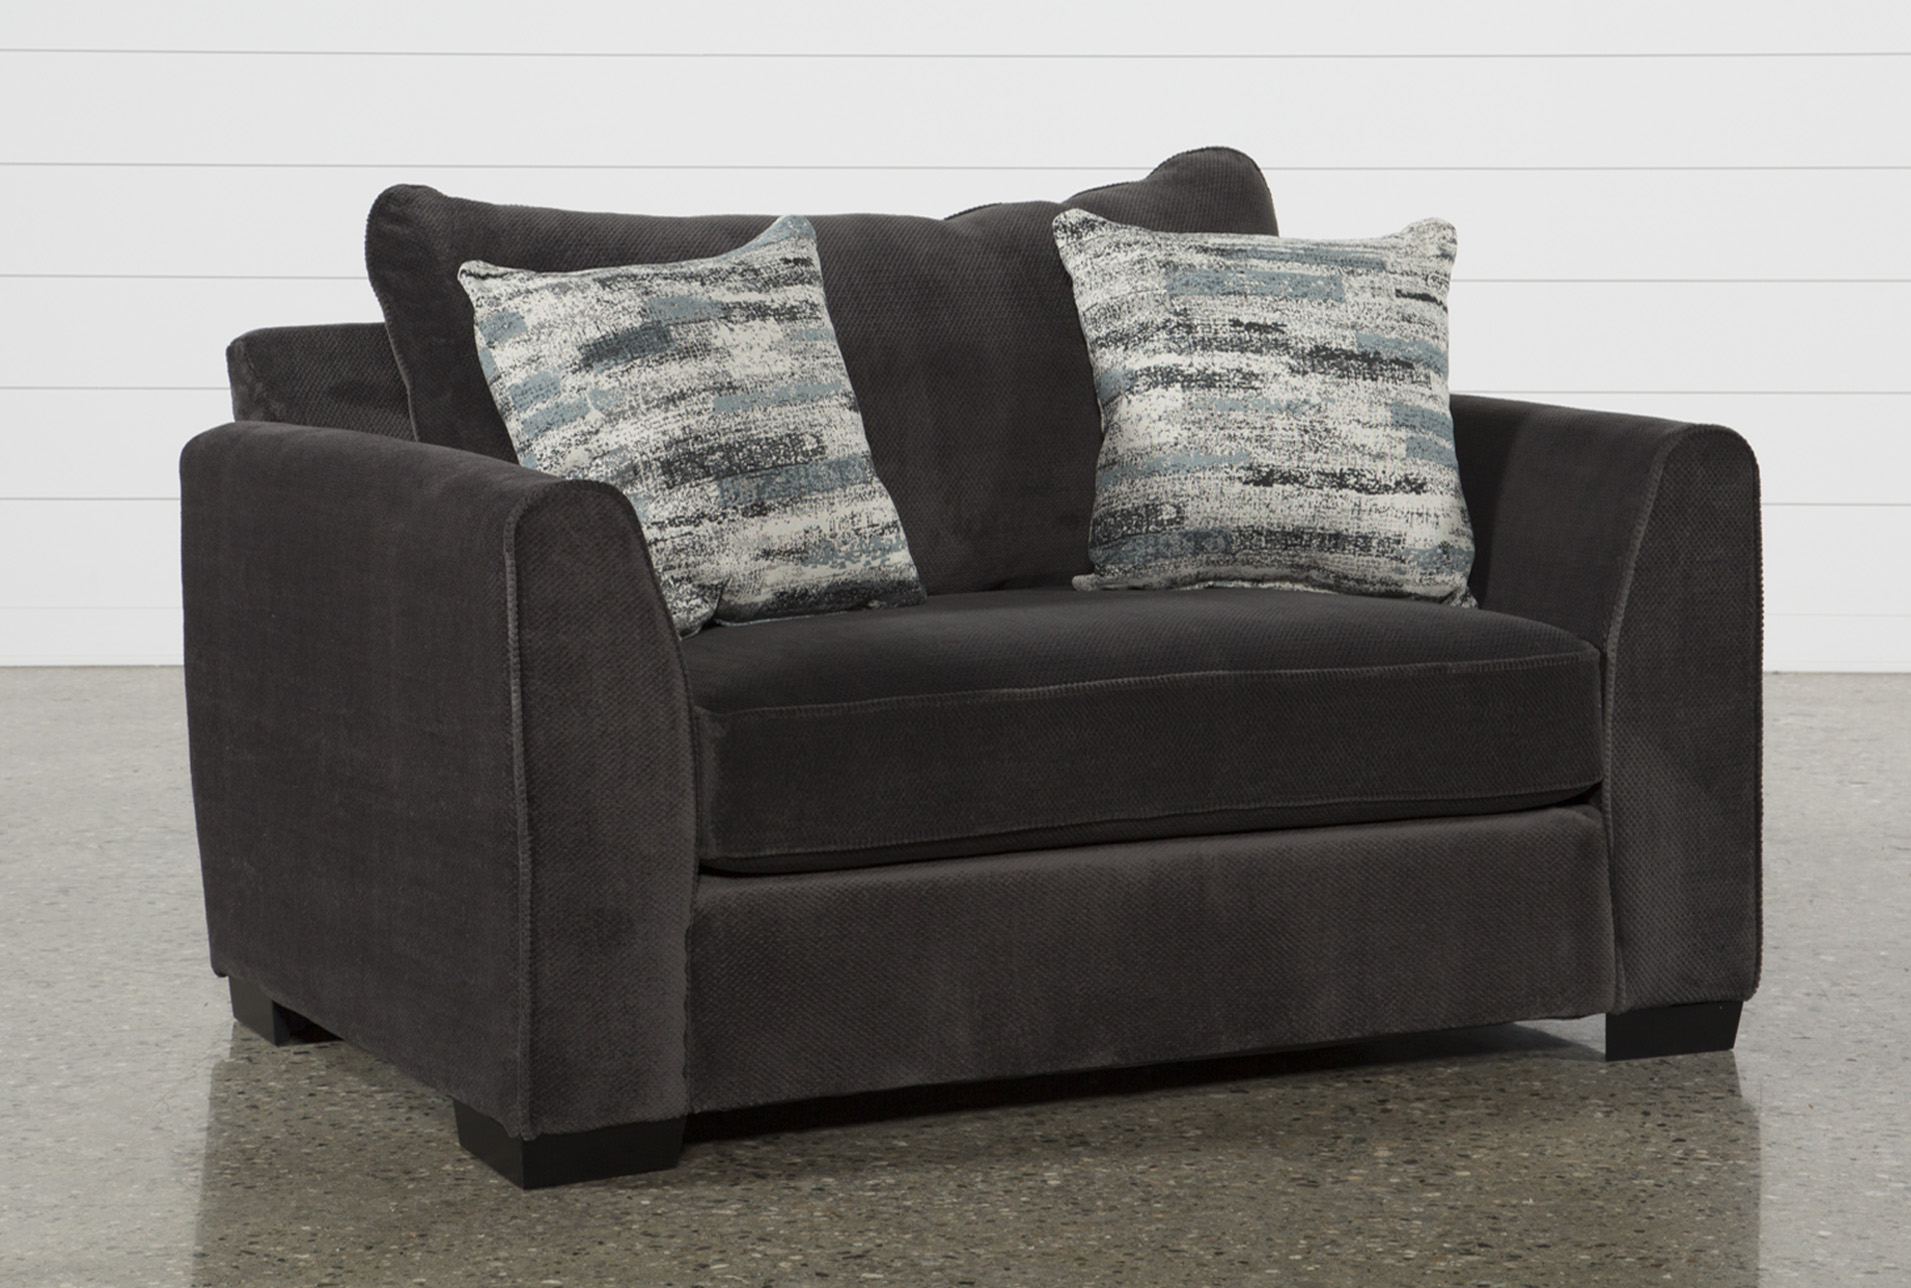 Sheldon Oversized Chair Qty 1 Has Been Successfully Added To Your Cart Large Oversized Chair F25